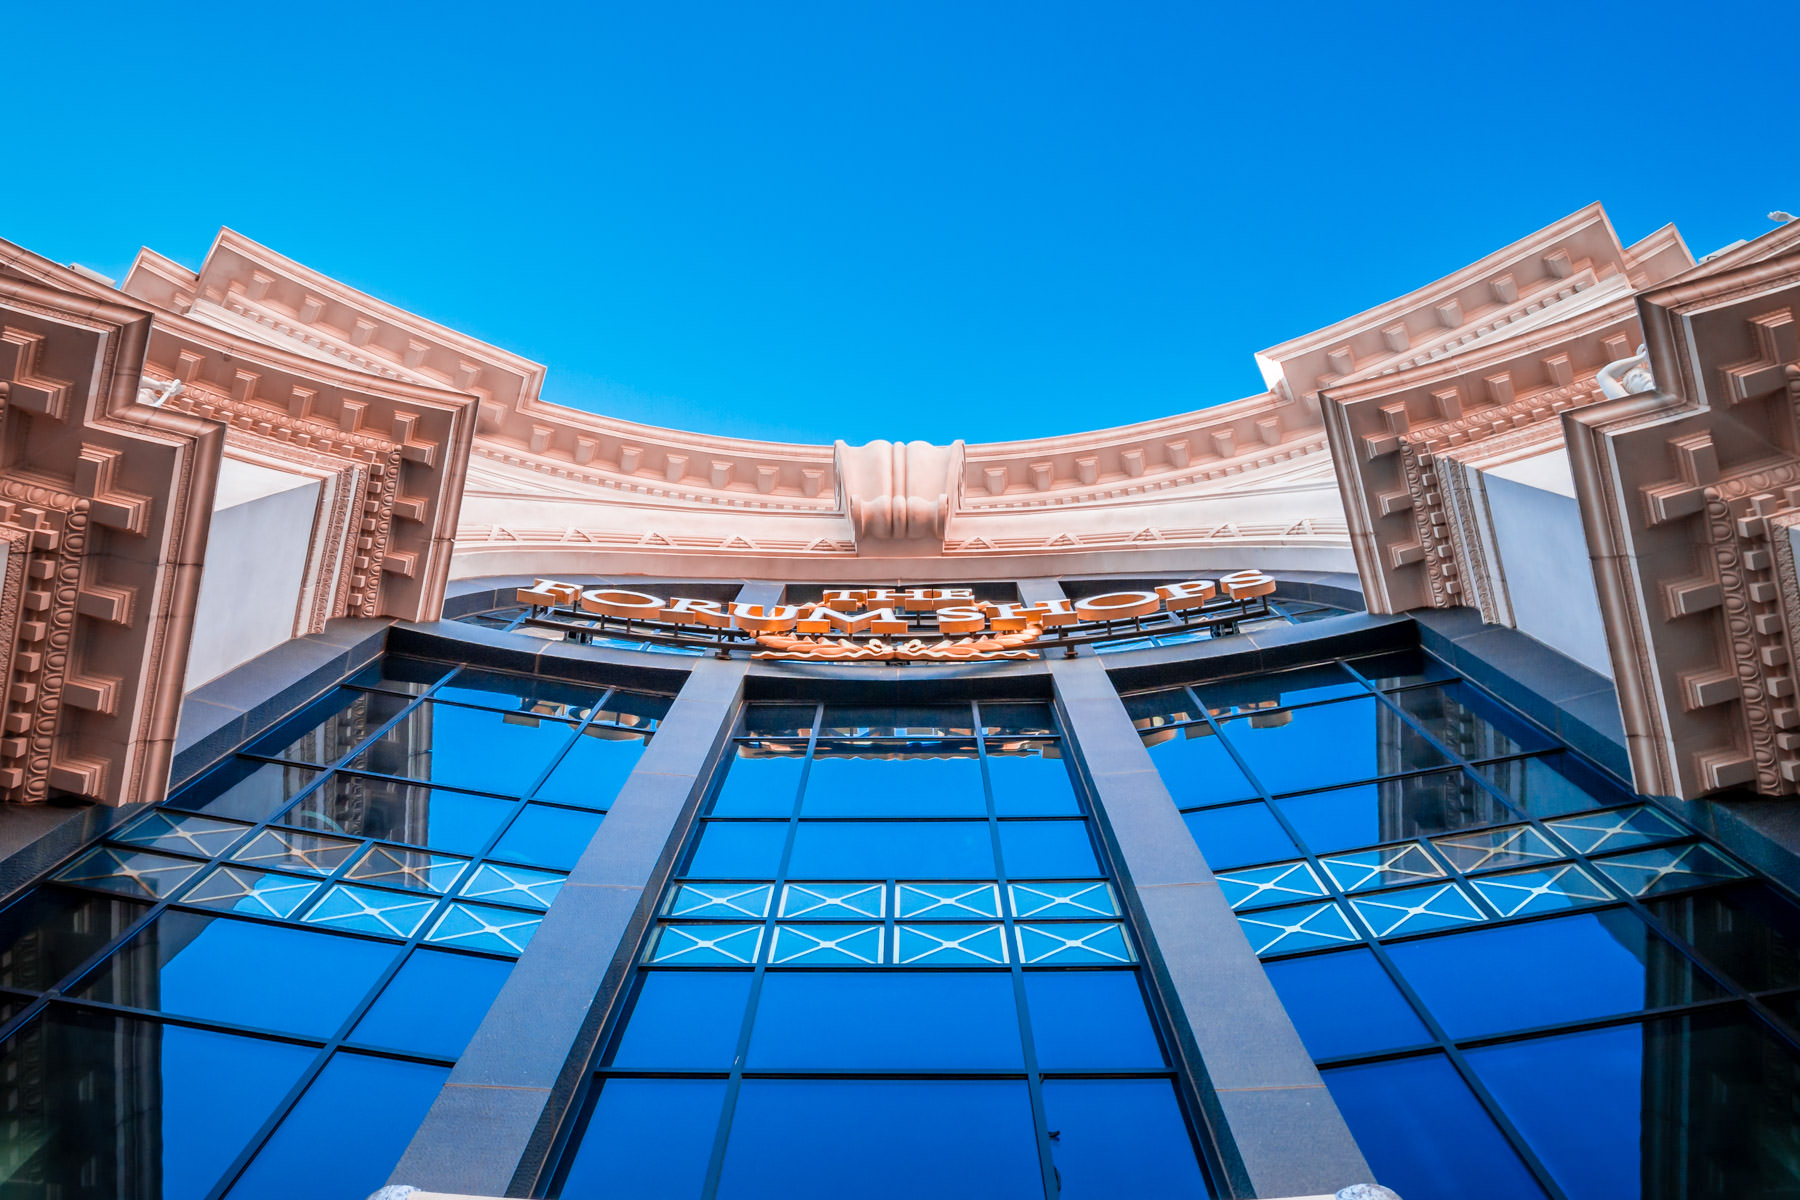 The façade of the main entrance to the Forum Shops at Caesars Palace, Las Vegas.